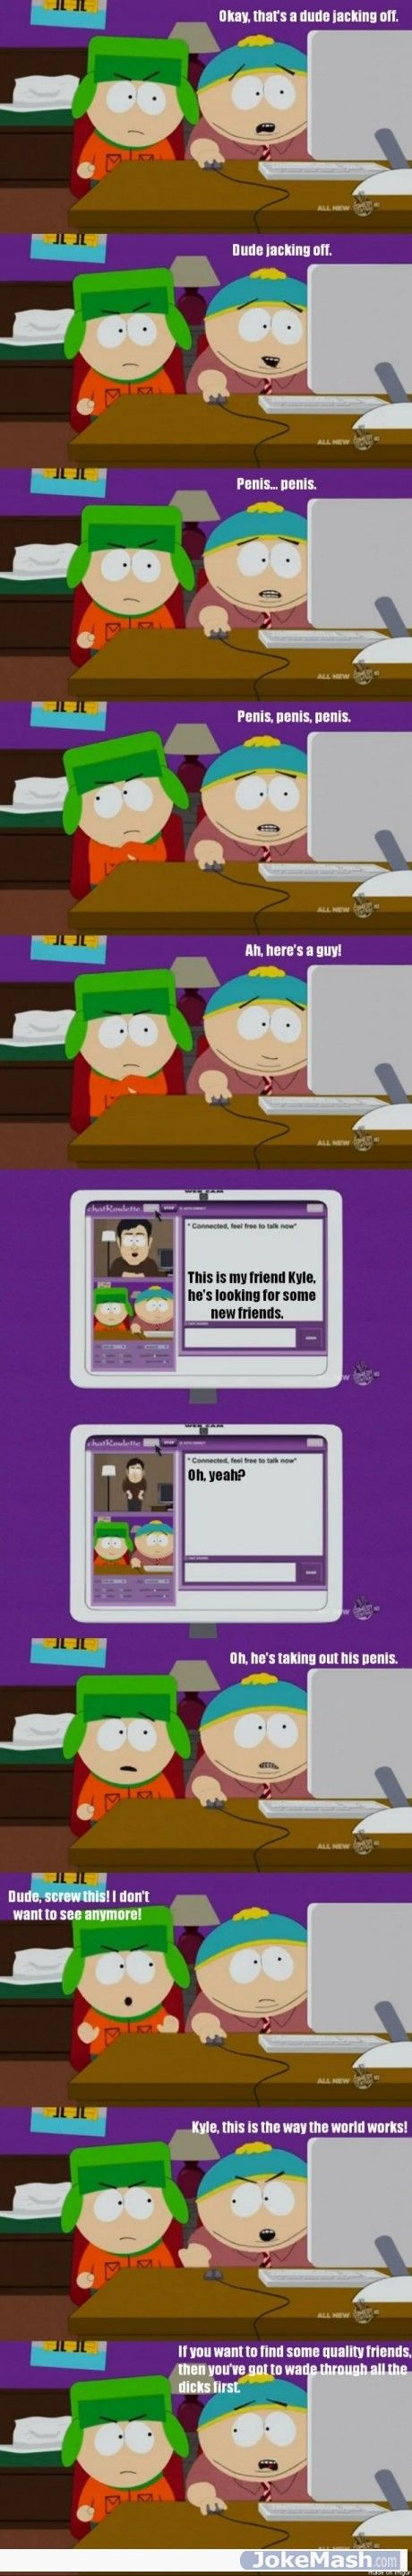 Chat-roulette South Park Style